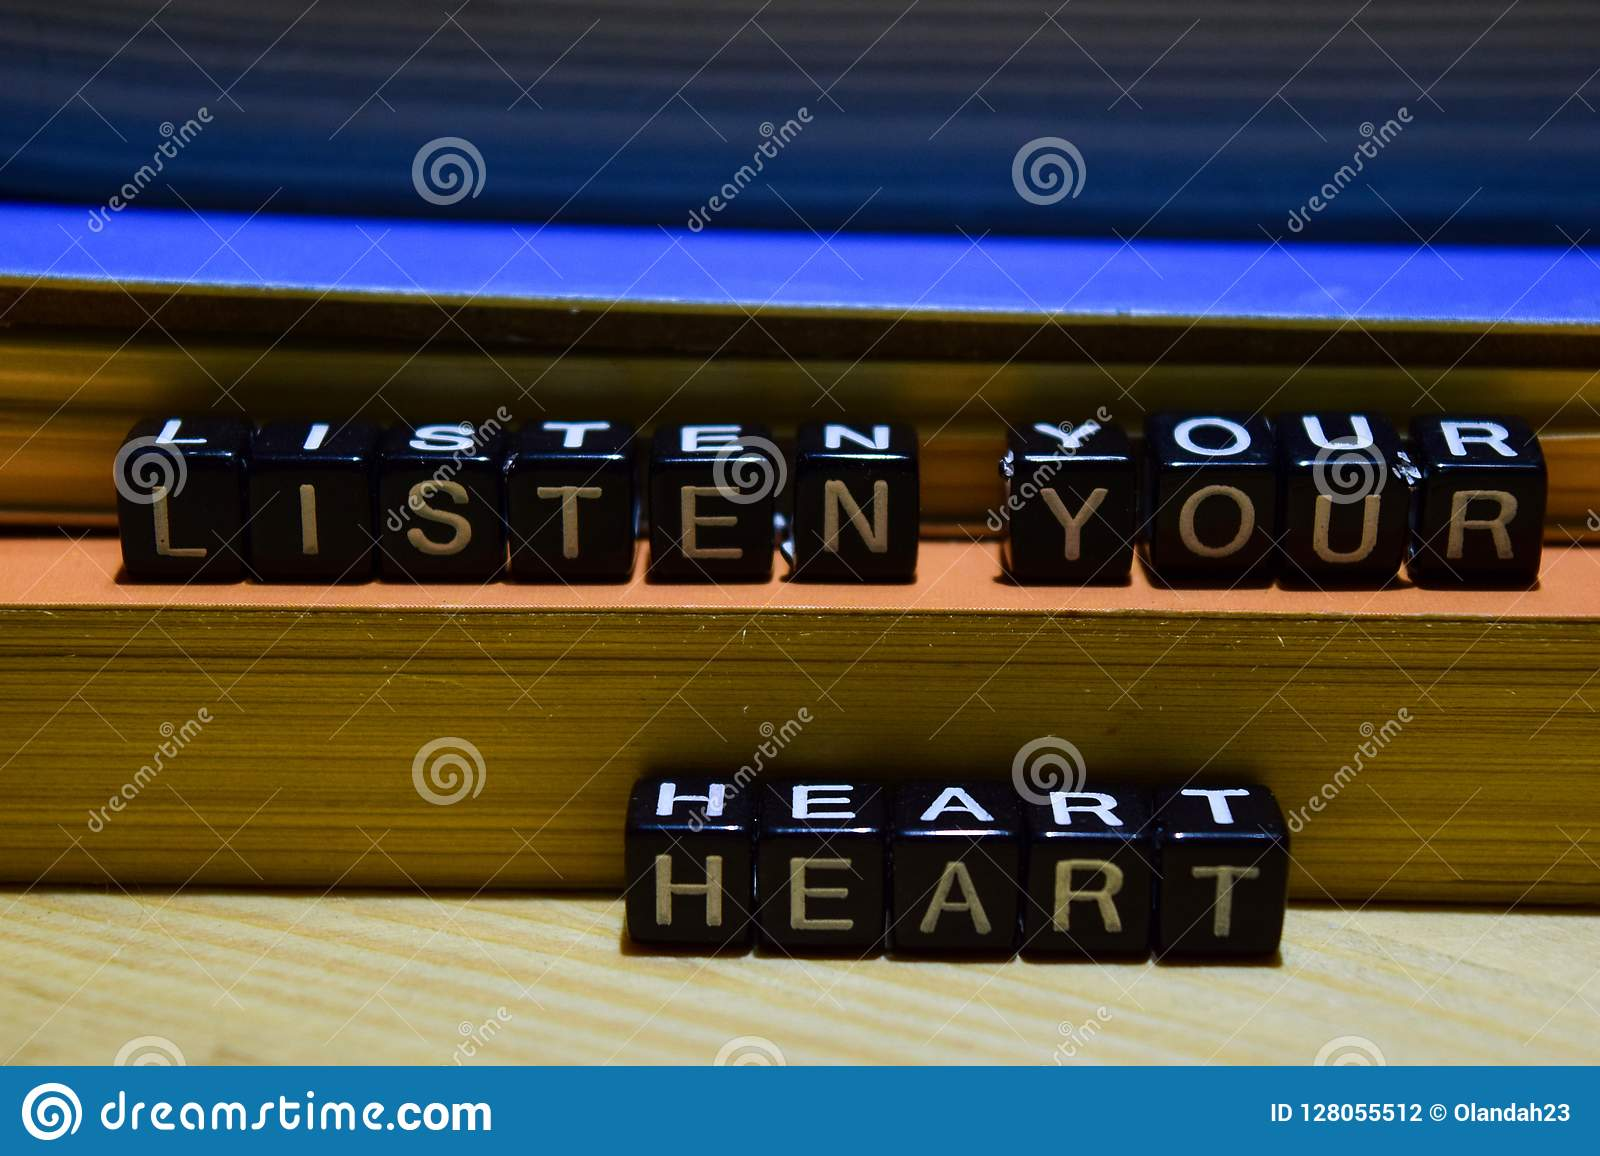 Listen your heart written on wooden blocks. Education and business concept